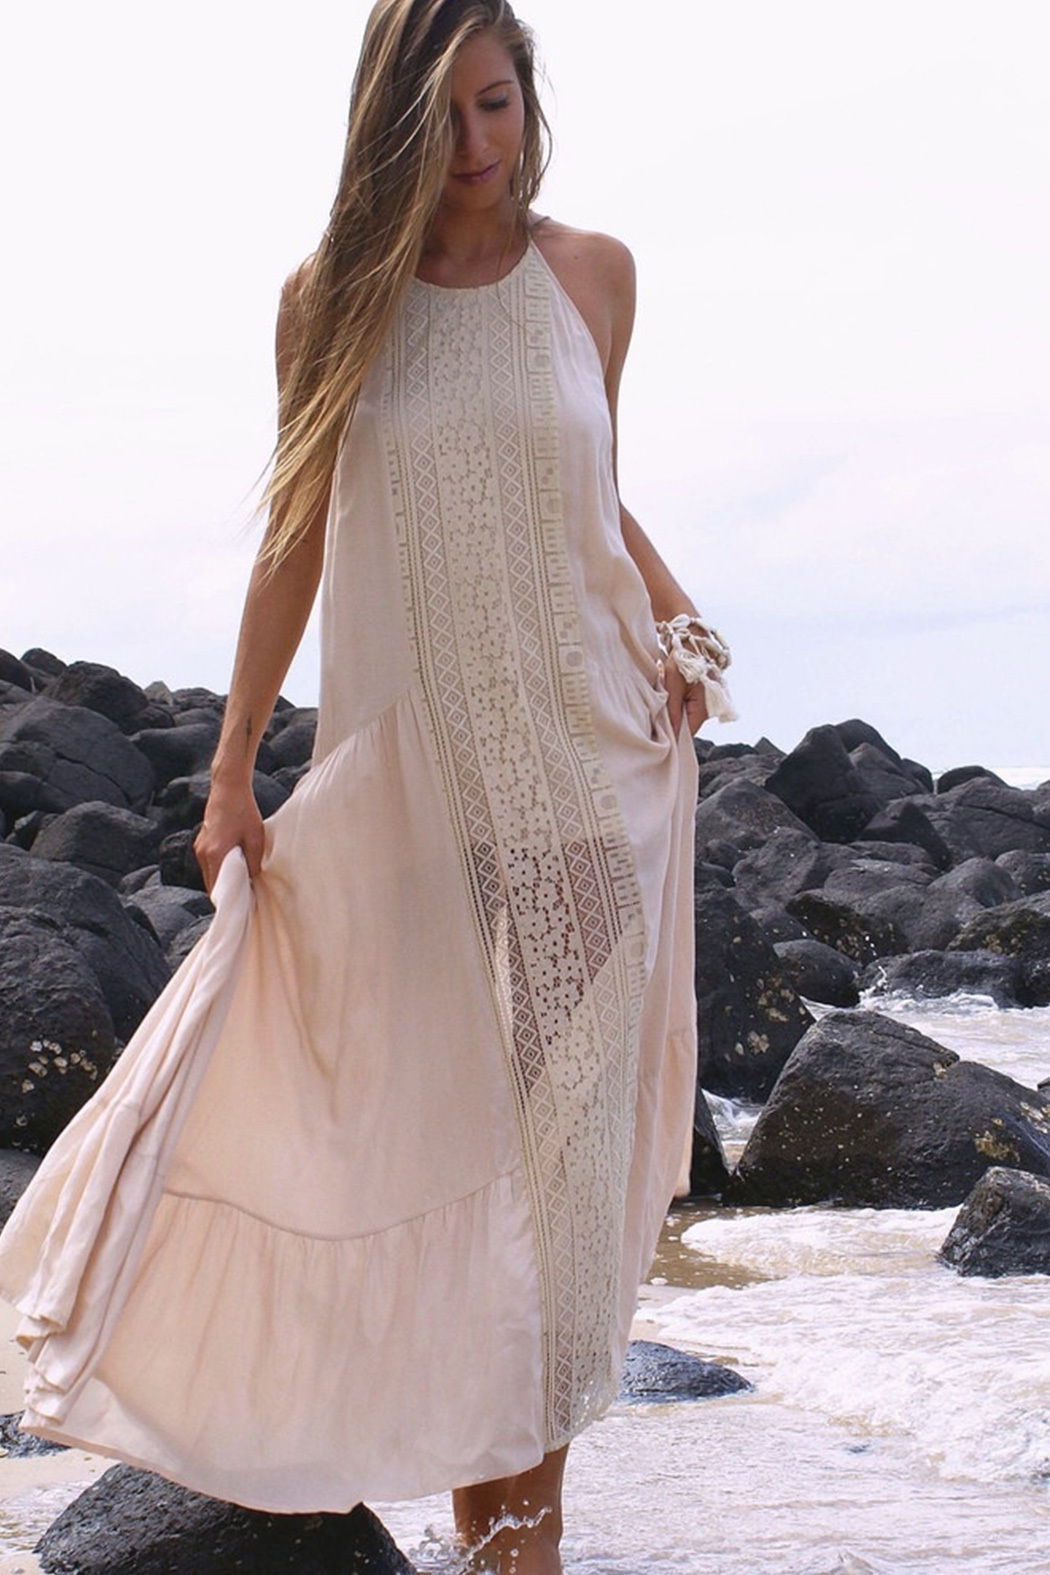 Lace Wedding Dresses Queensland : Le salty label bronte lace dress from queensland by white